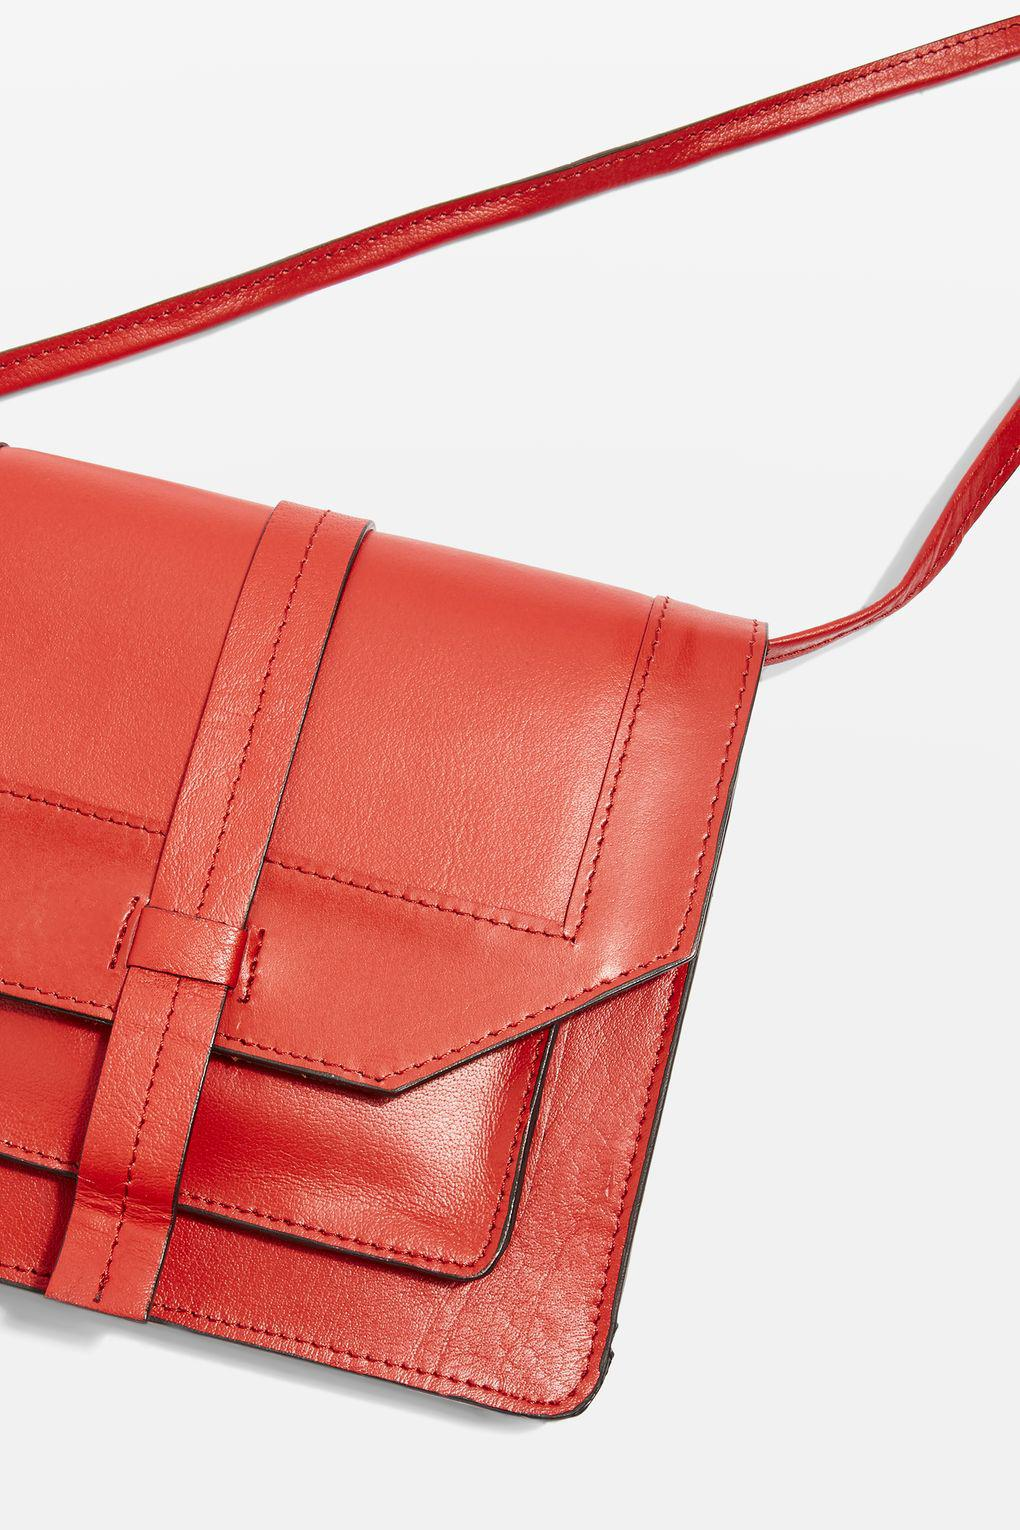 TOPSHOP Leather Anita Cross Body Bag in Red